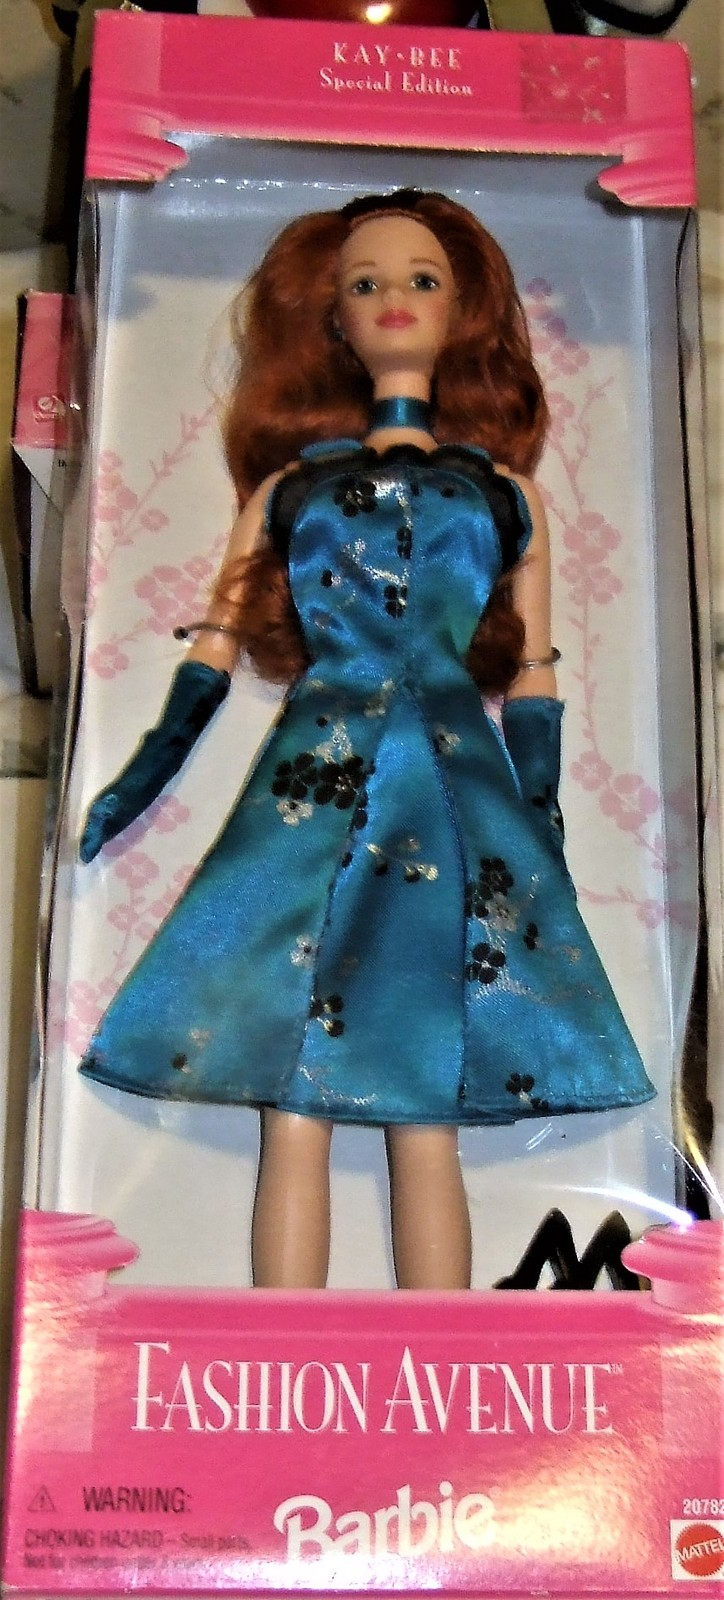 Barbie Doll - FASHION AVENUE Kay-Bee Special Ed (1998) Long Red Hair image 3